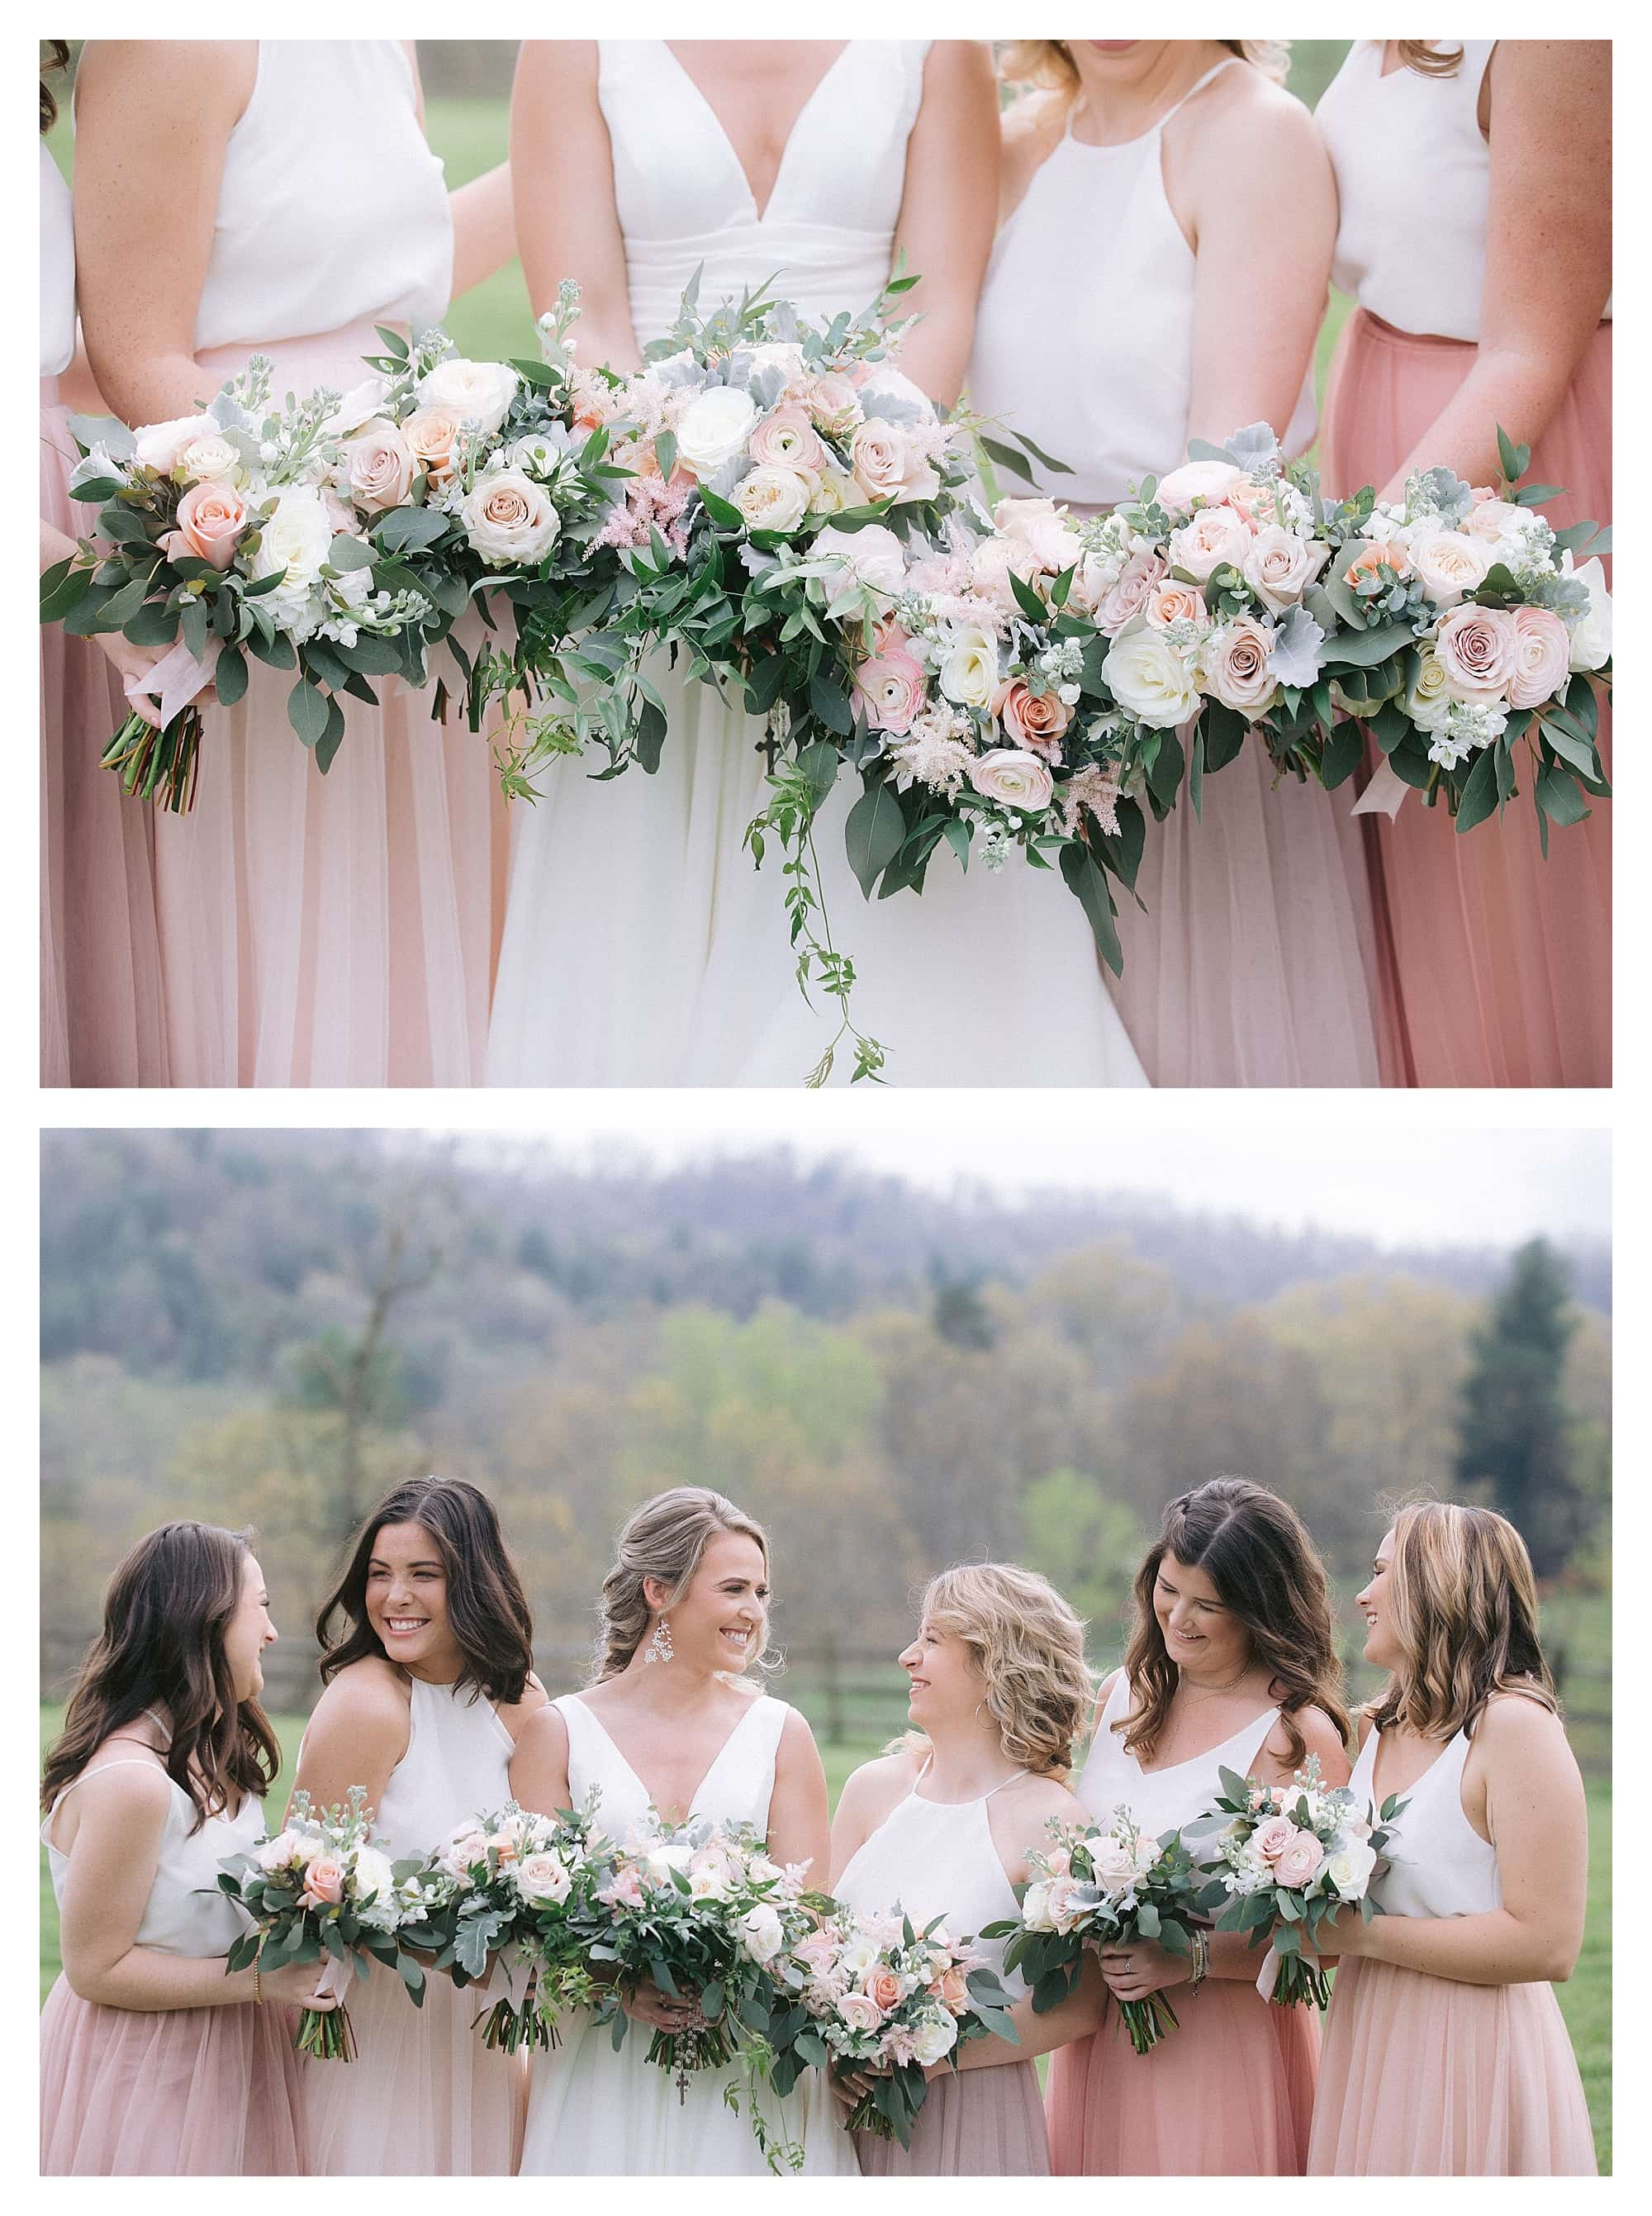 Bride and bridesmaids holding cream and peach floral bouquets laughing